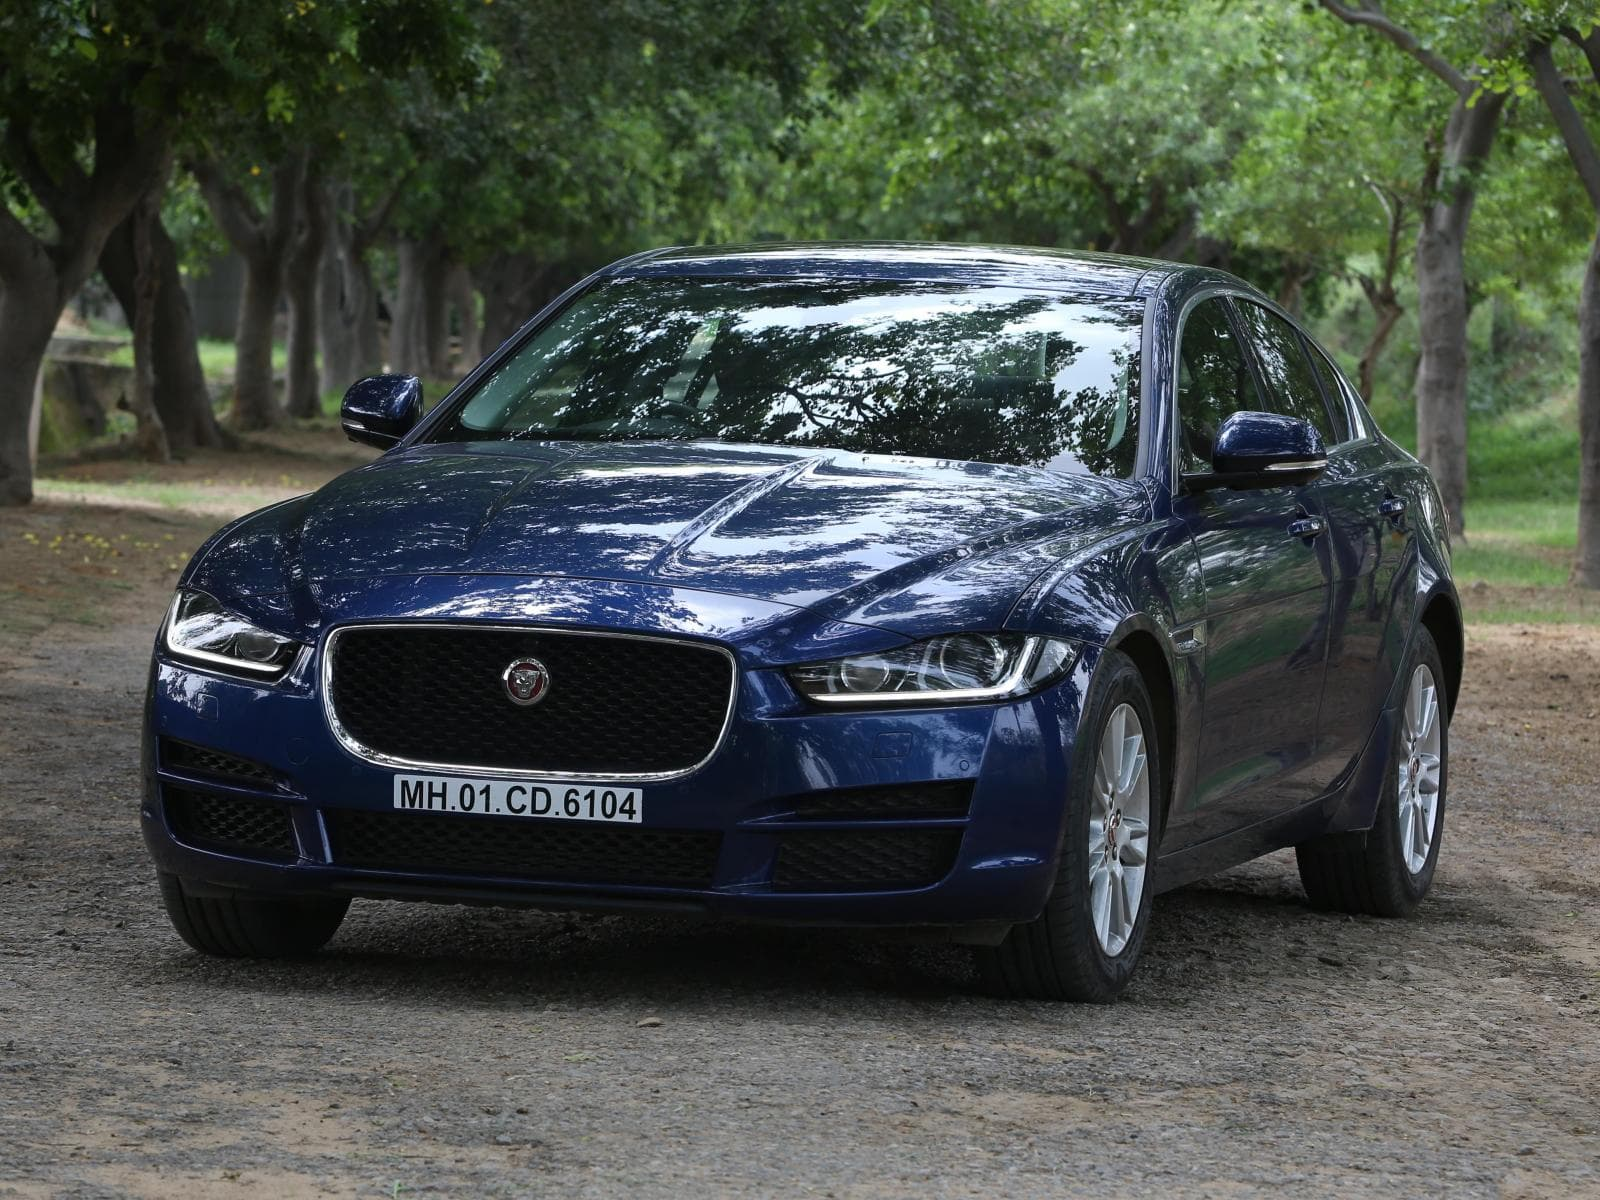 Jaguar Xe Wallpapers Free Download